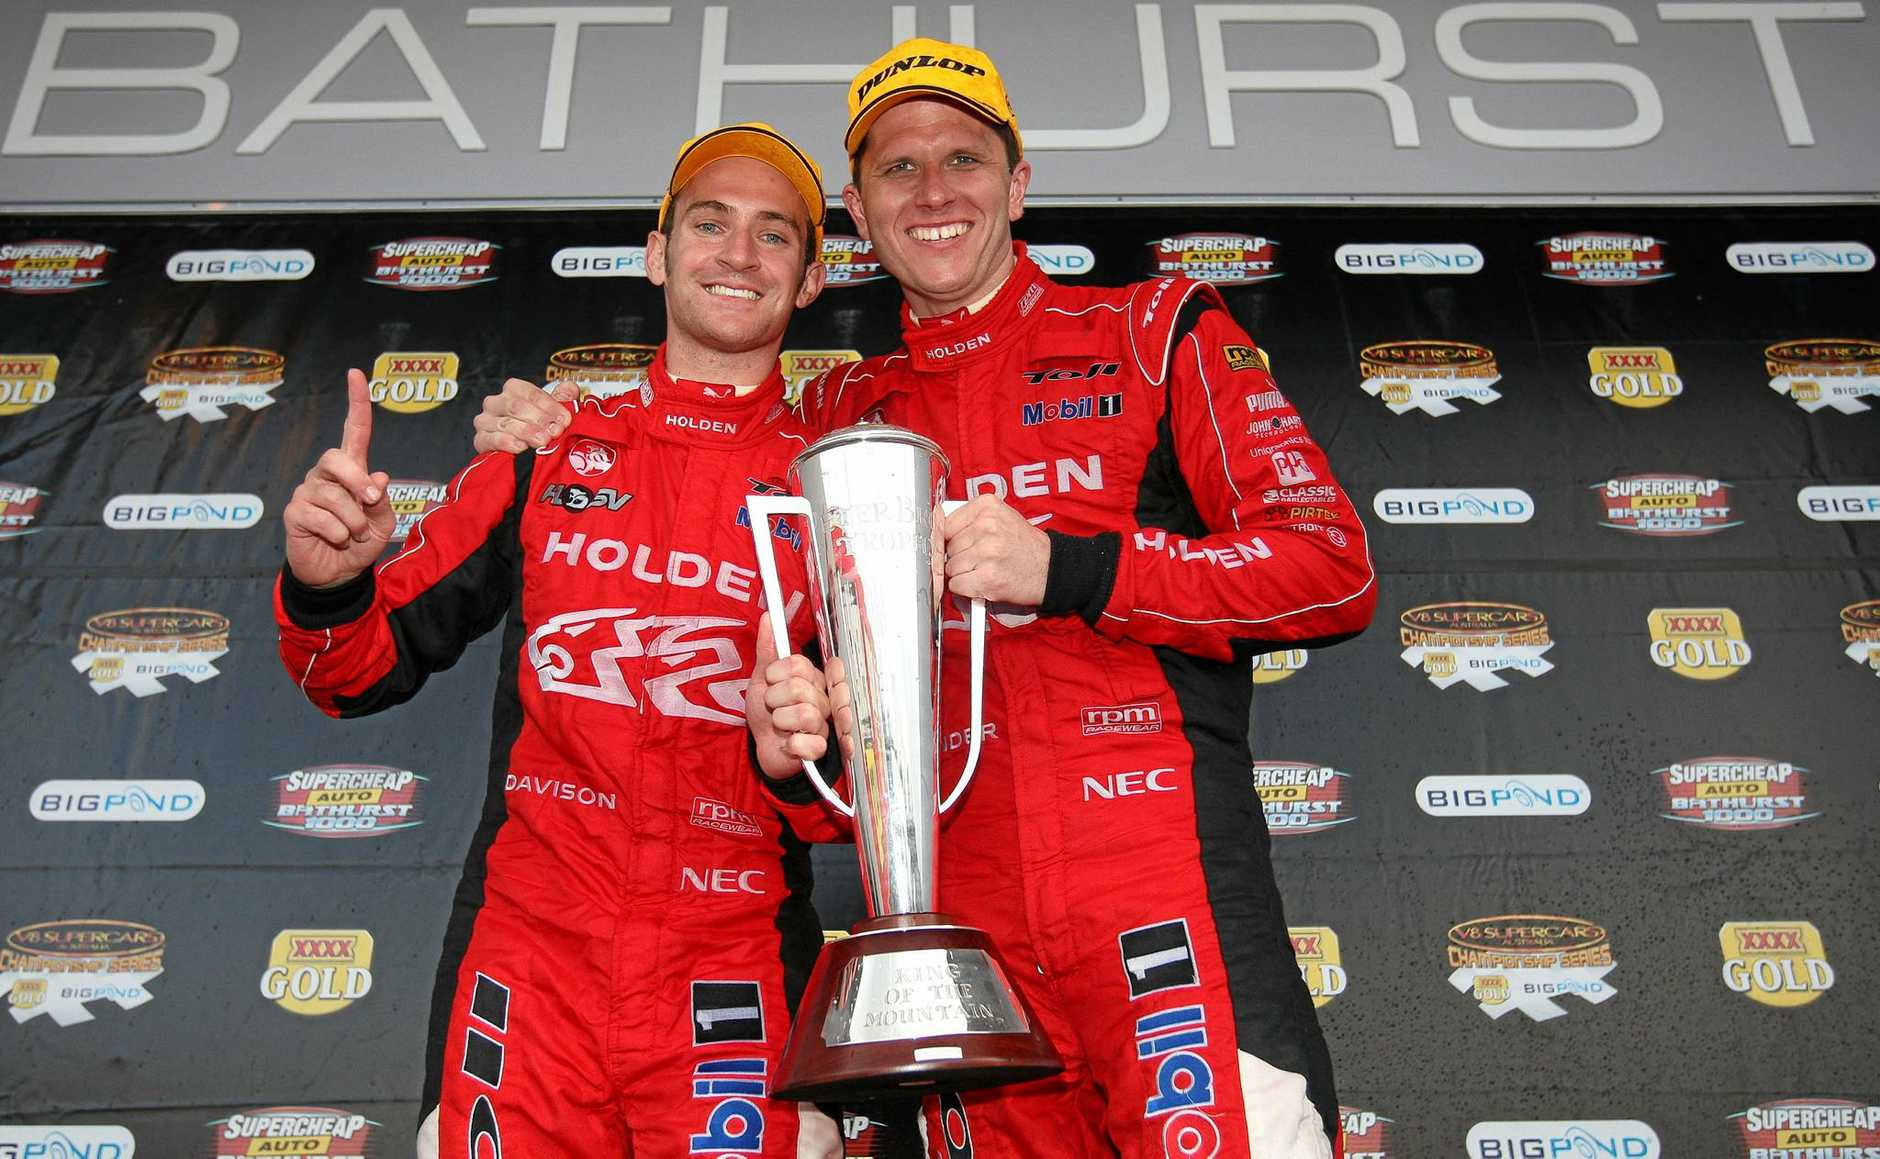 The Holden Racing Team of Garth Tander and Will Davison win the Supercheap Auto Bathurst 1000 at the Mount Panorama Circuit in 2009.